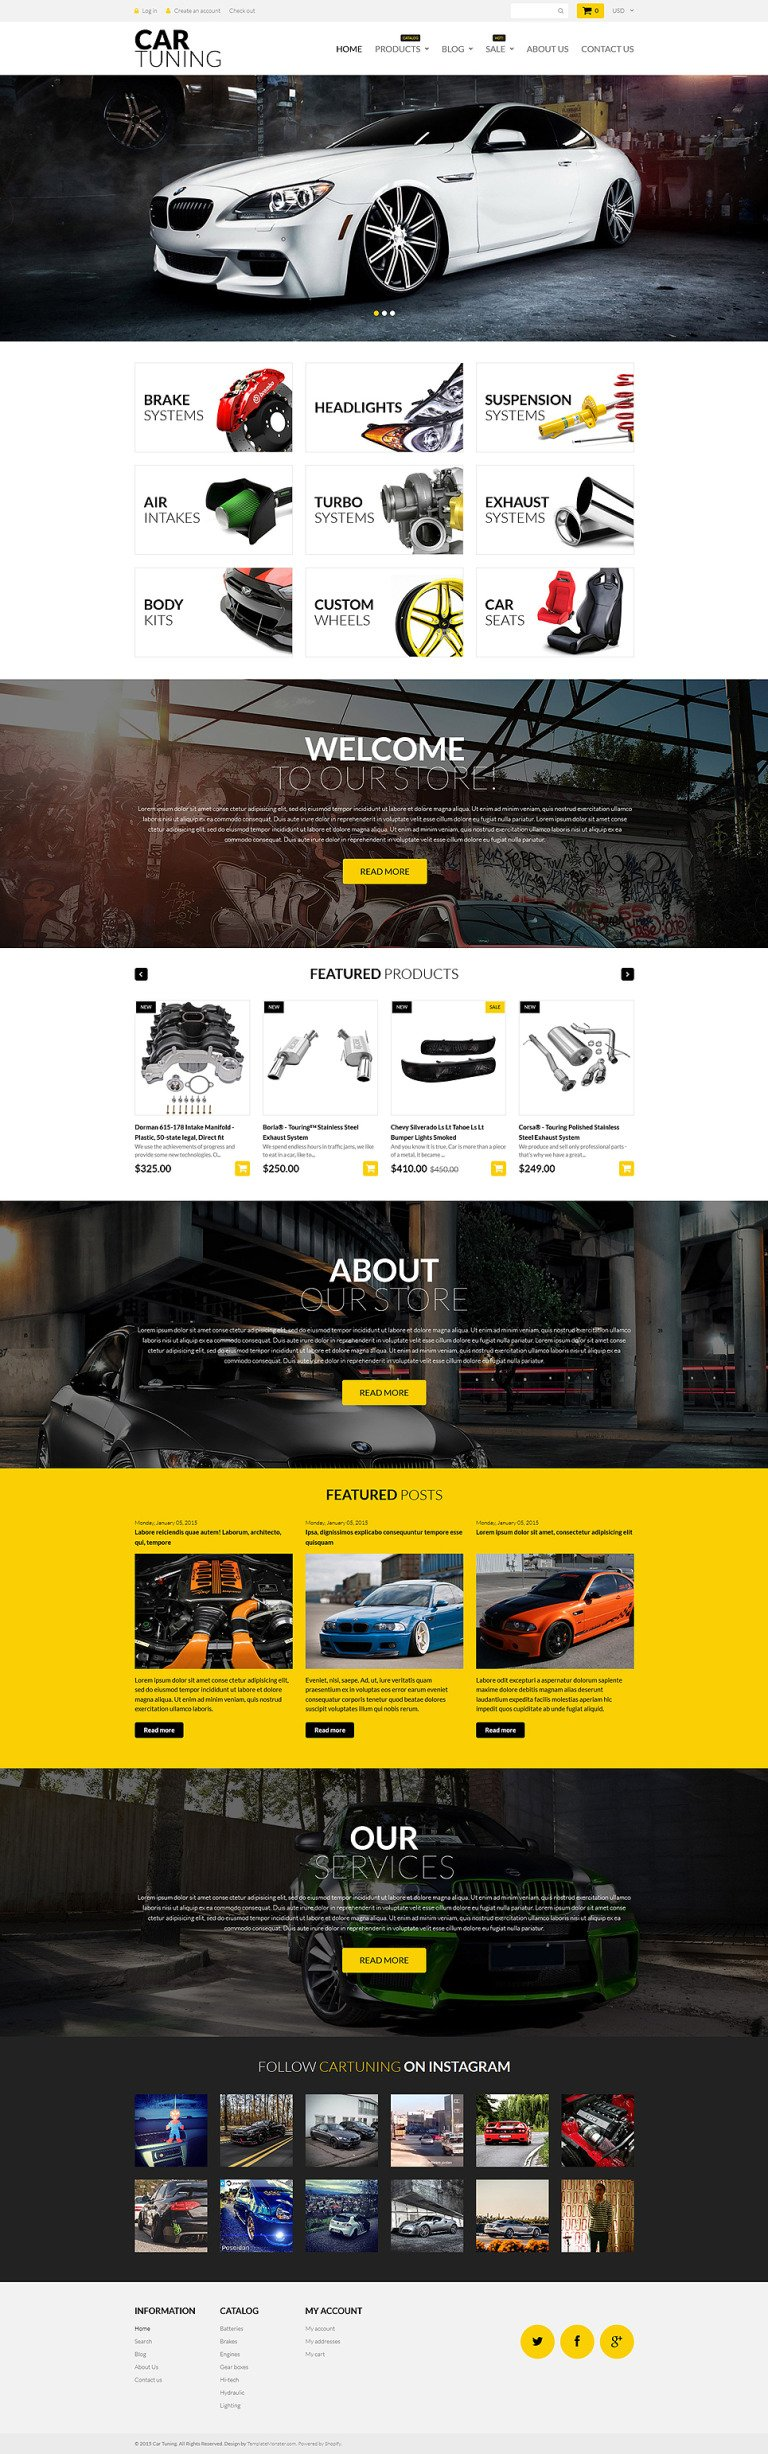 Car Tuning Shopify Theme New Screenshots BIG